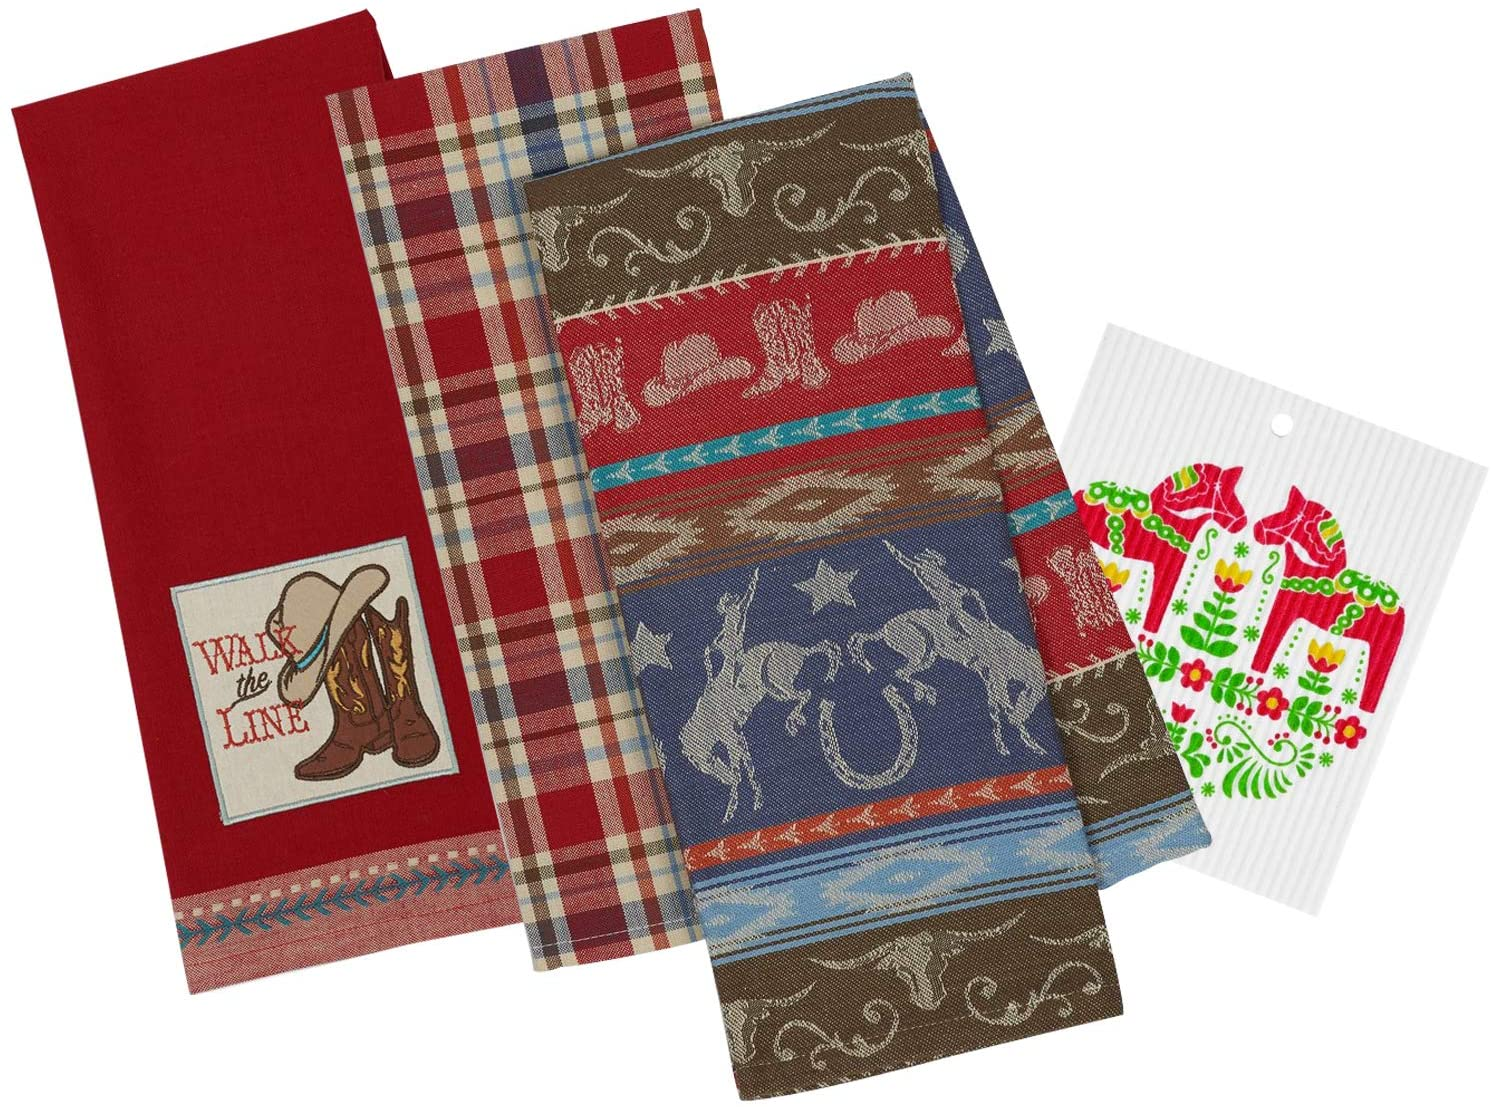 Western Themed Decorative Kitchen Towels |2 Retro Vintage Style Horse Towels with Cowboy Boots, Hats and Cattle Skull Print, 1 Plaid Towel Set for Dish and Hand Drying | Includes Swedish Dish Cloth